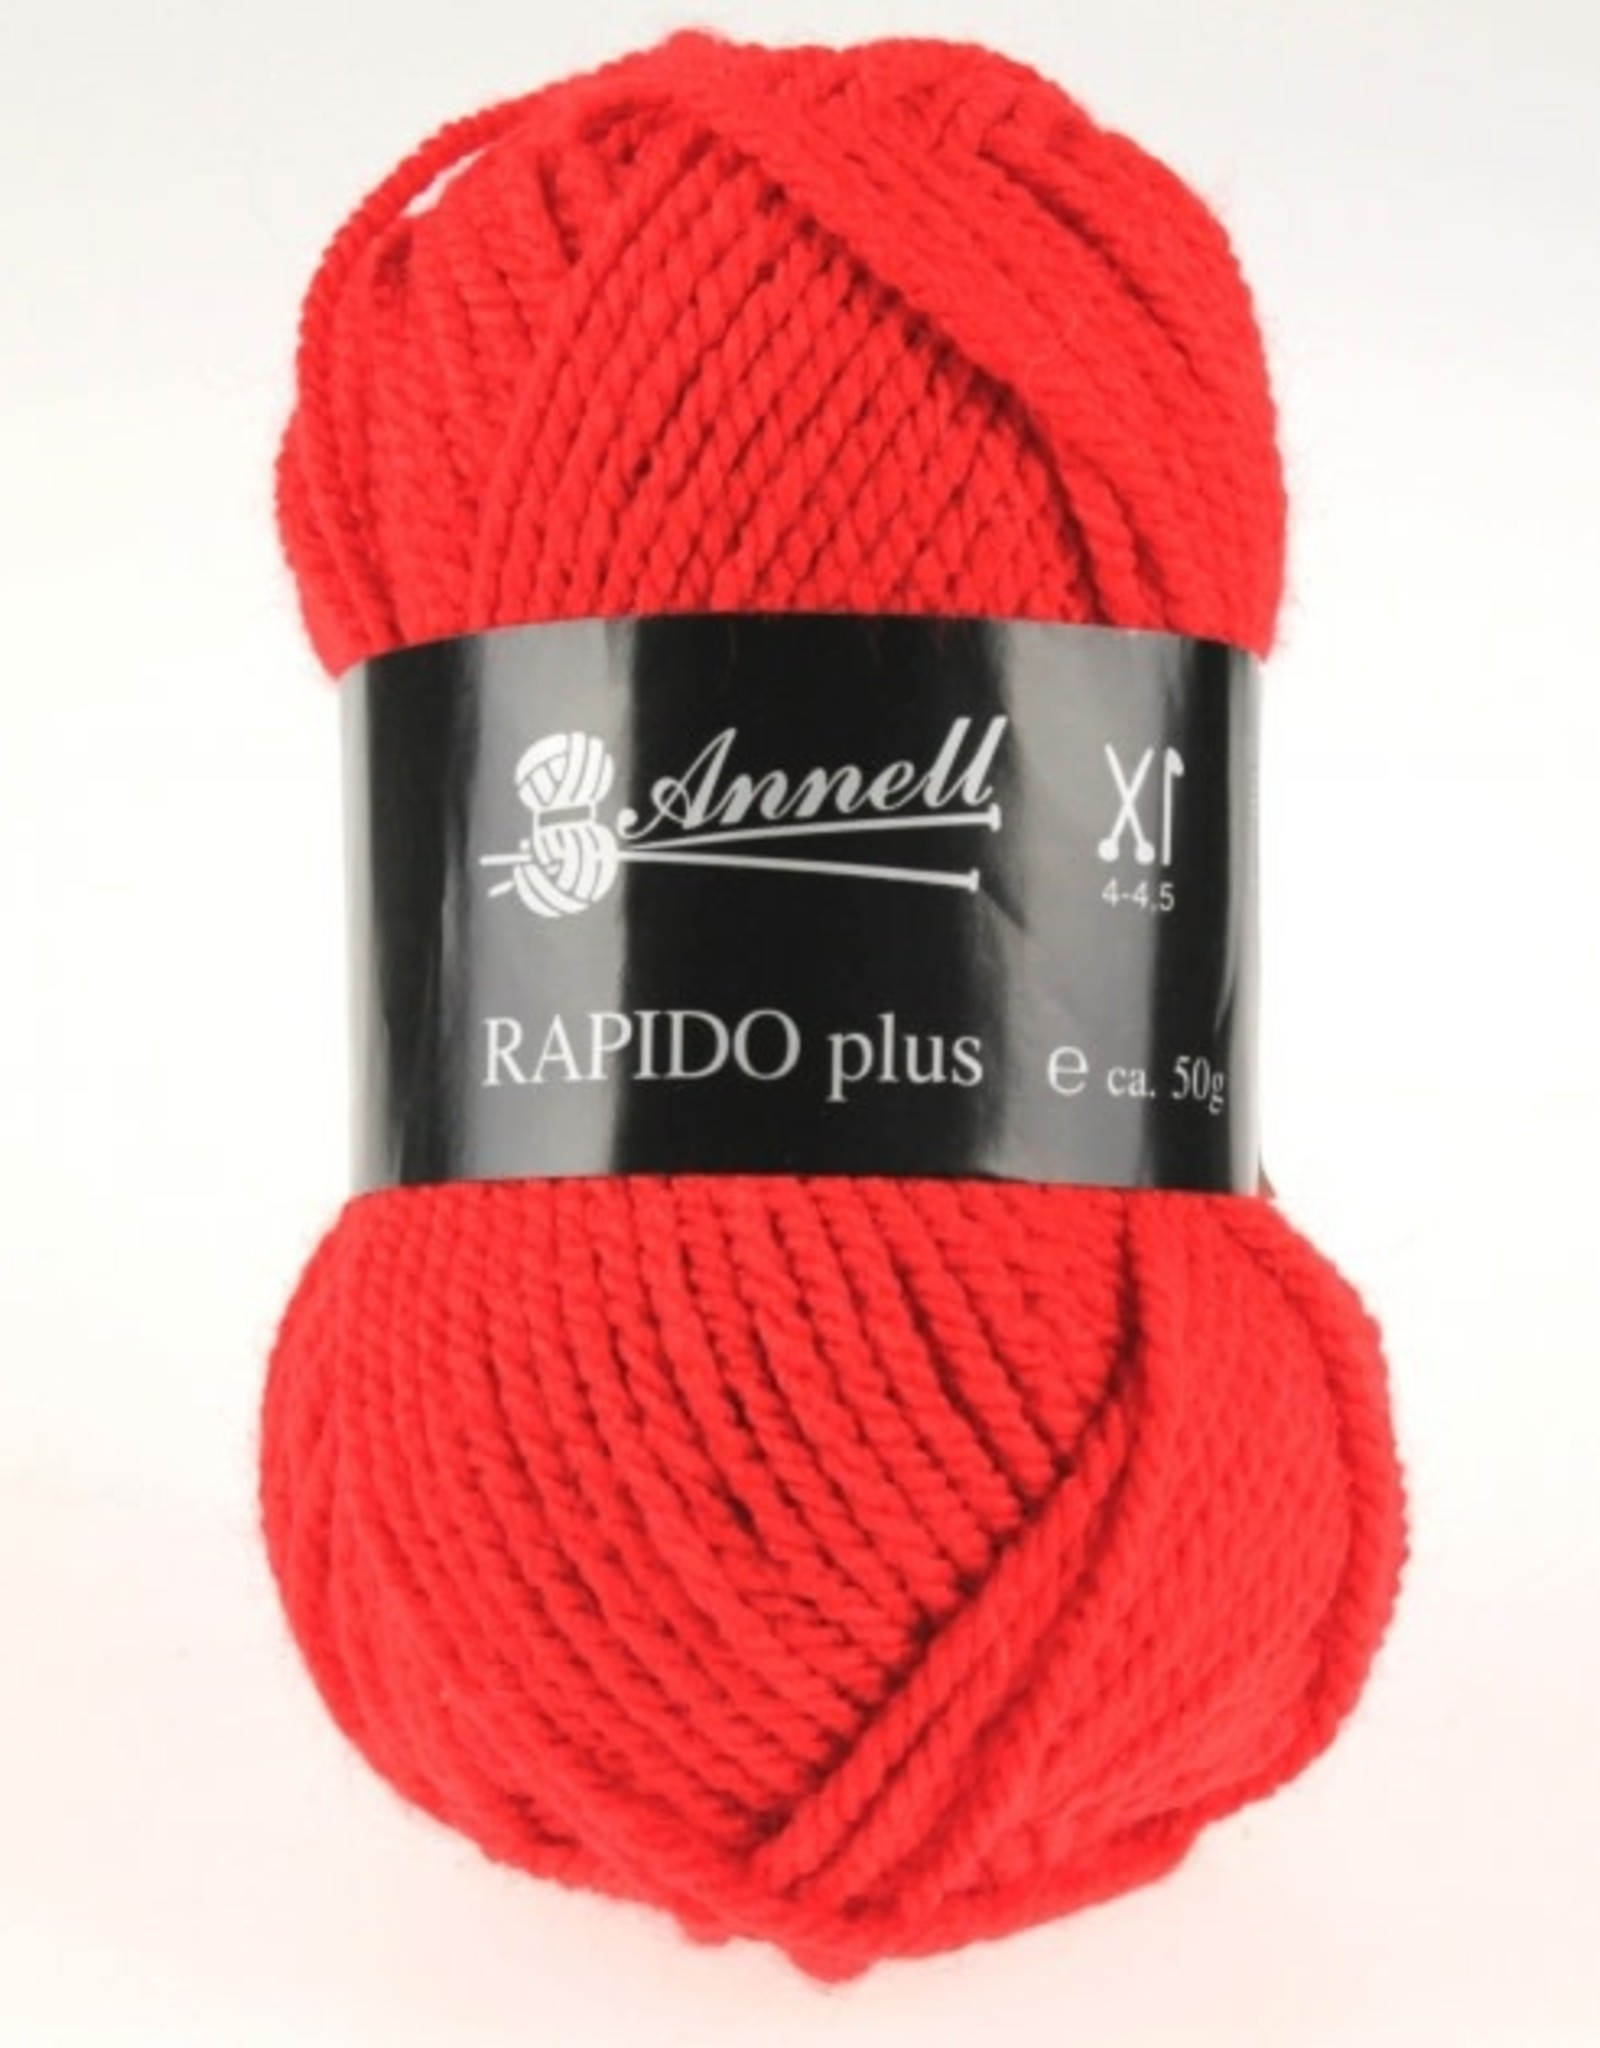 Annell Annell rapido plus 9212